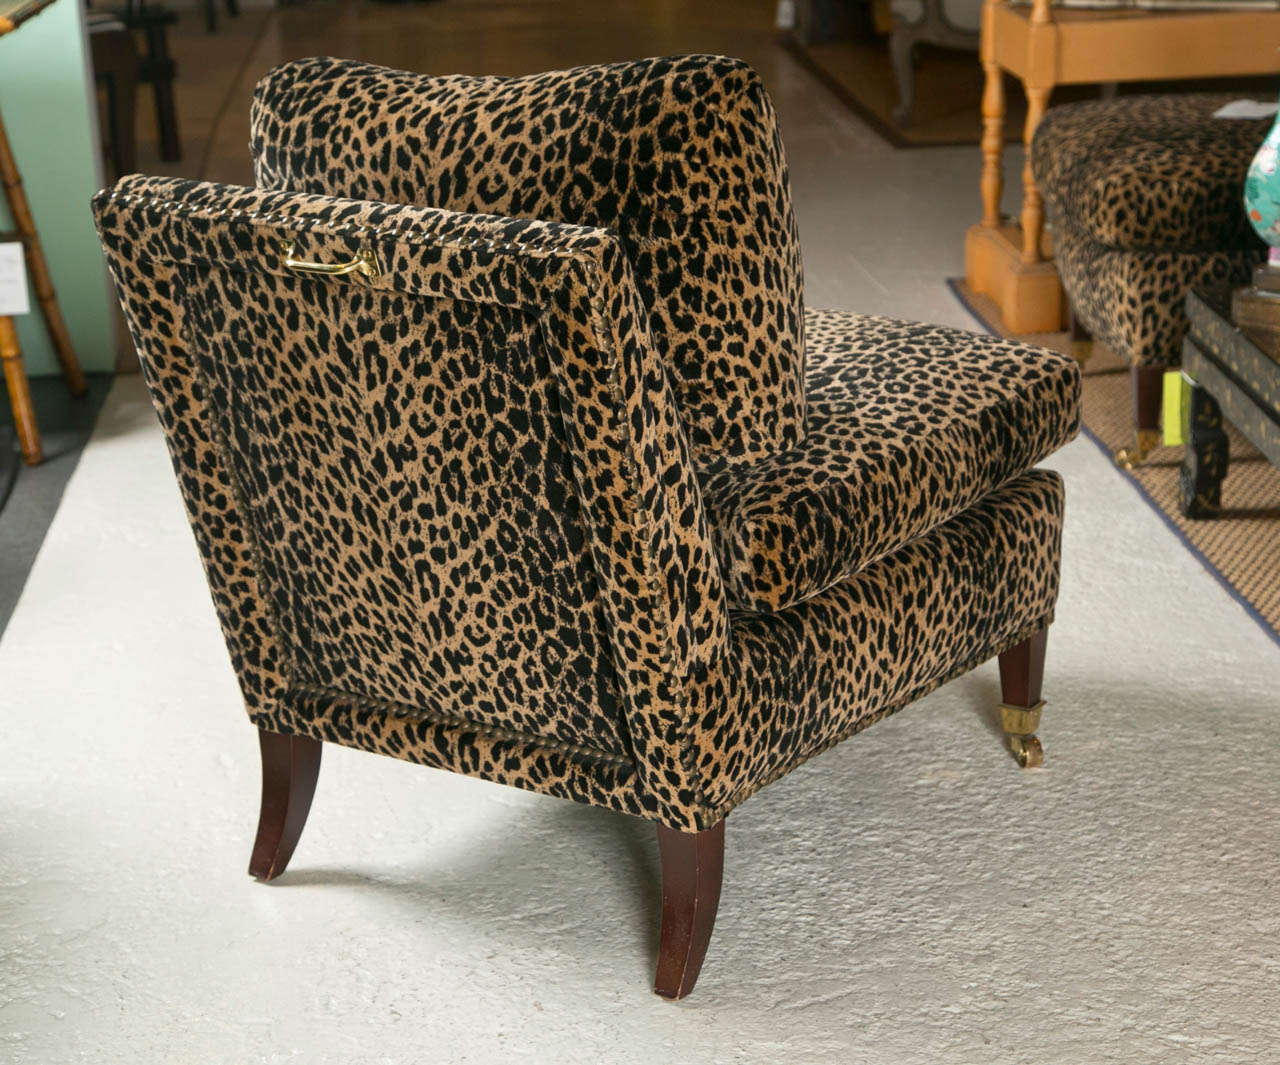 leopard print sofa appears spa collection chenille bed mid century lolling chairs upholstered in animal